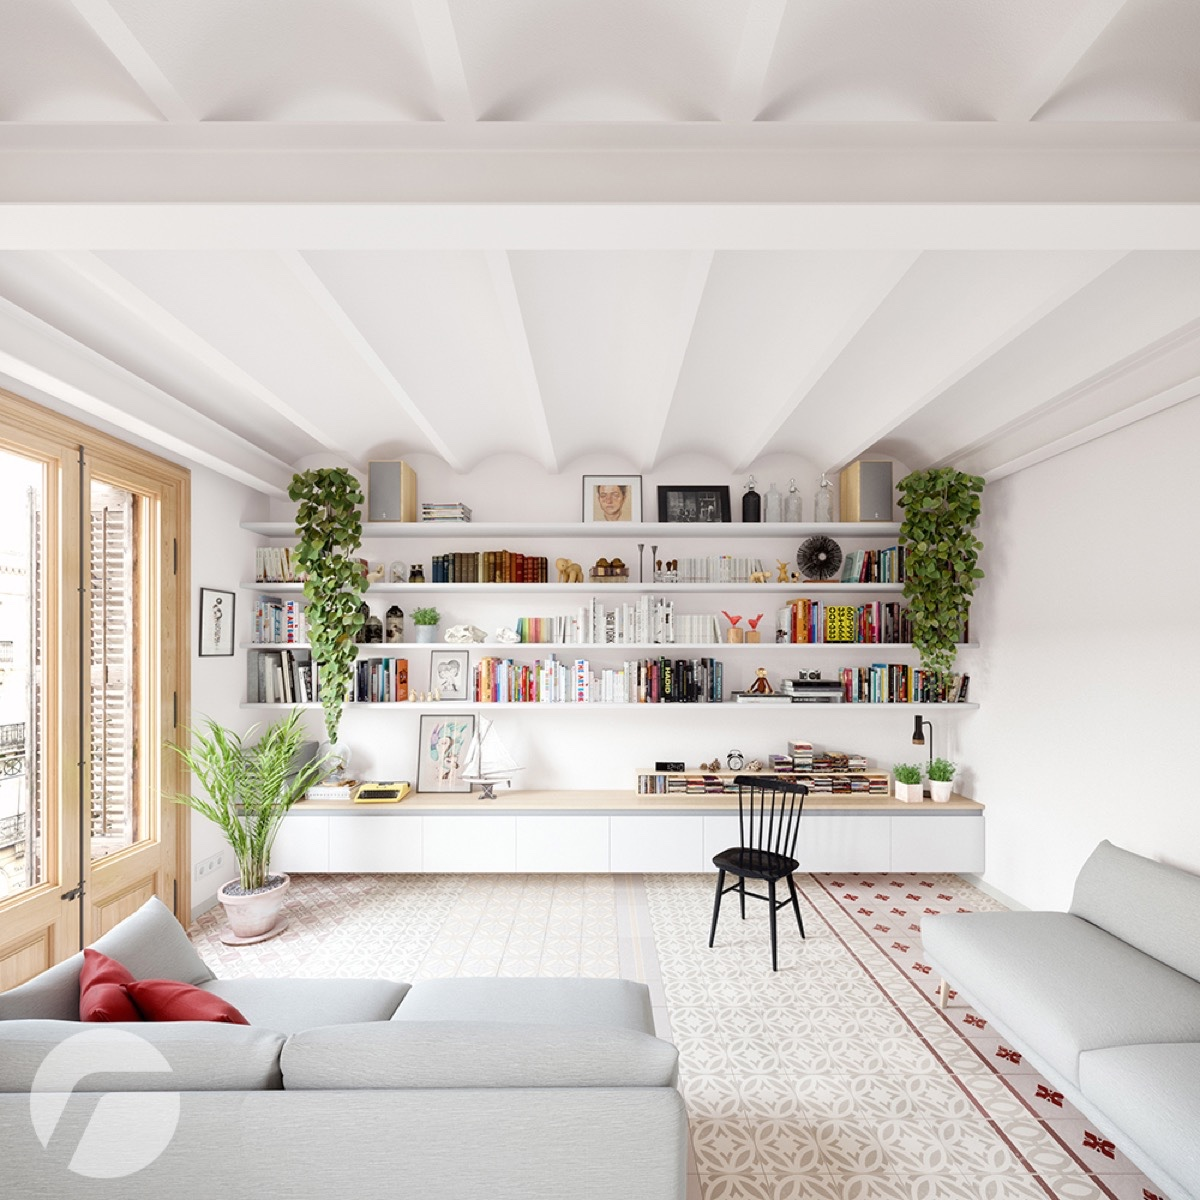 Home Interior Design: 10 Stunning Apartments That Show Off The Beauty Of Nordic